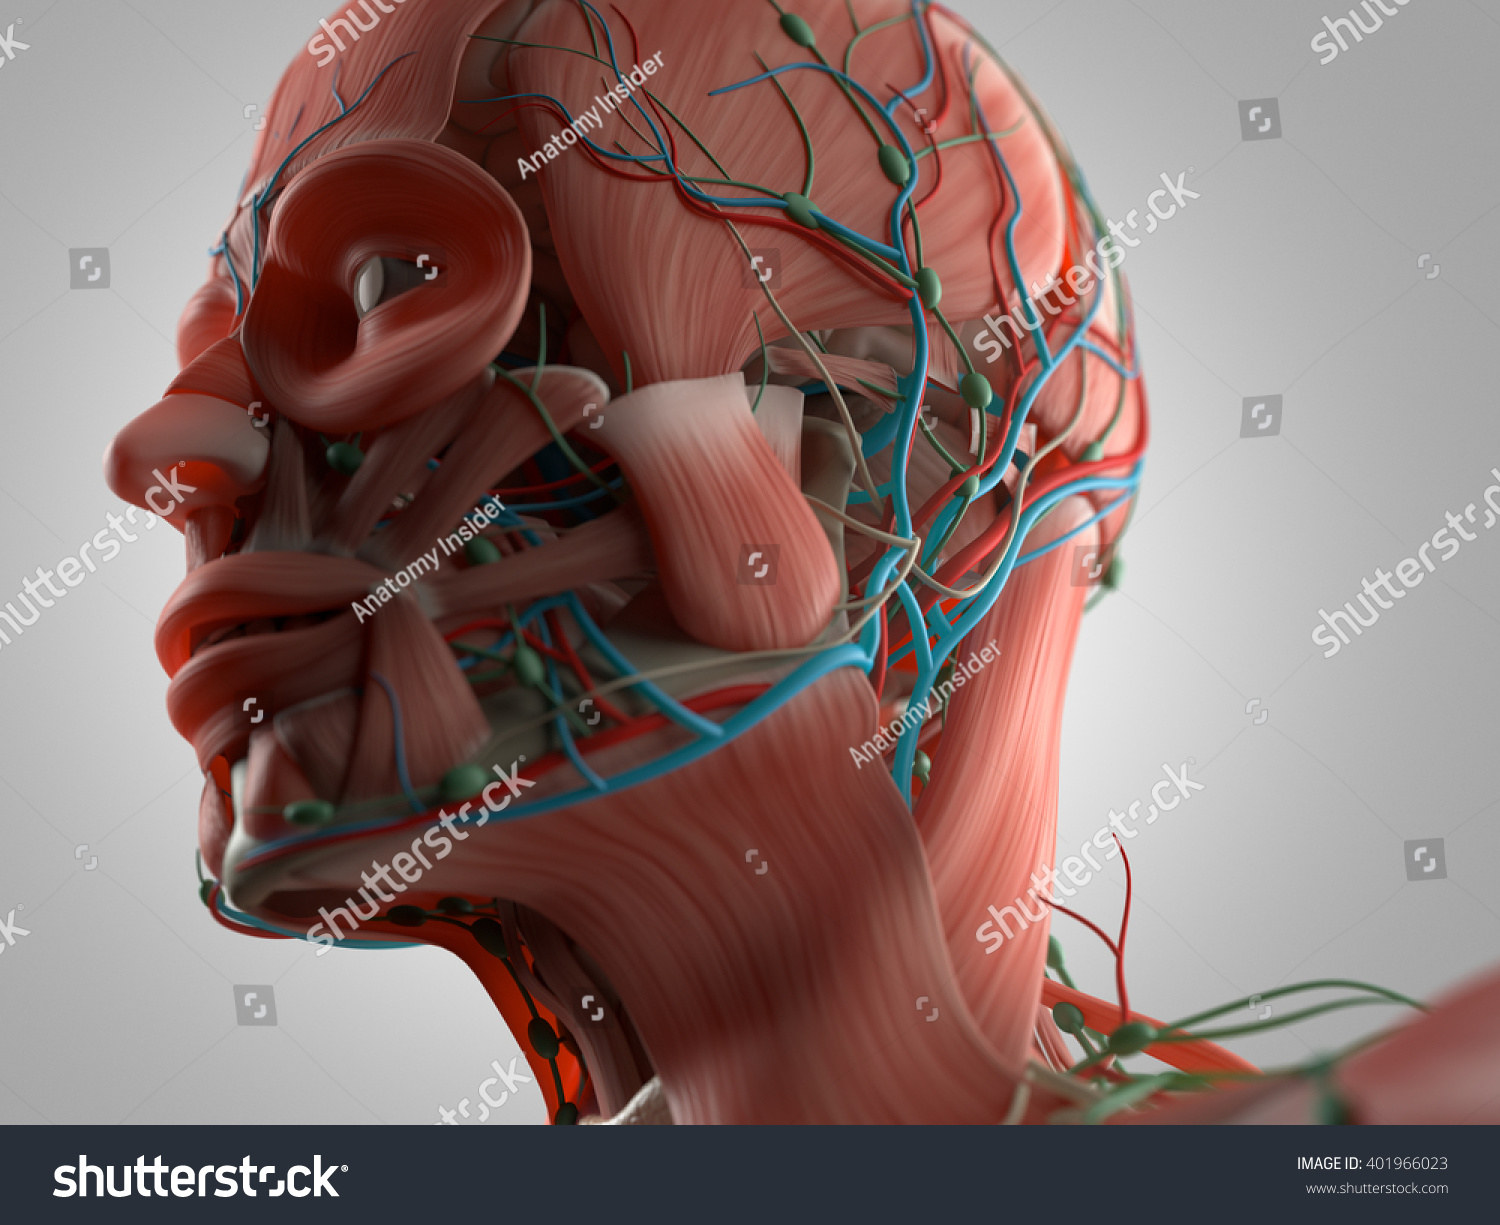 Royalty Free Stock Illustration Of Anatomy Head Muscles 3 D